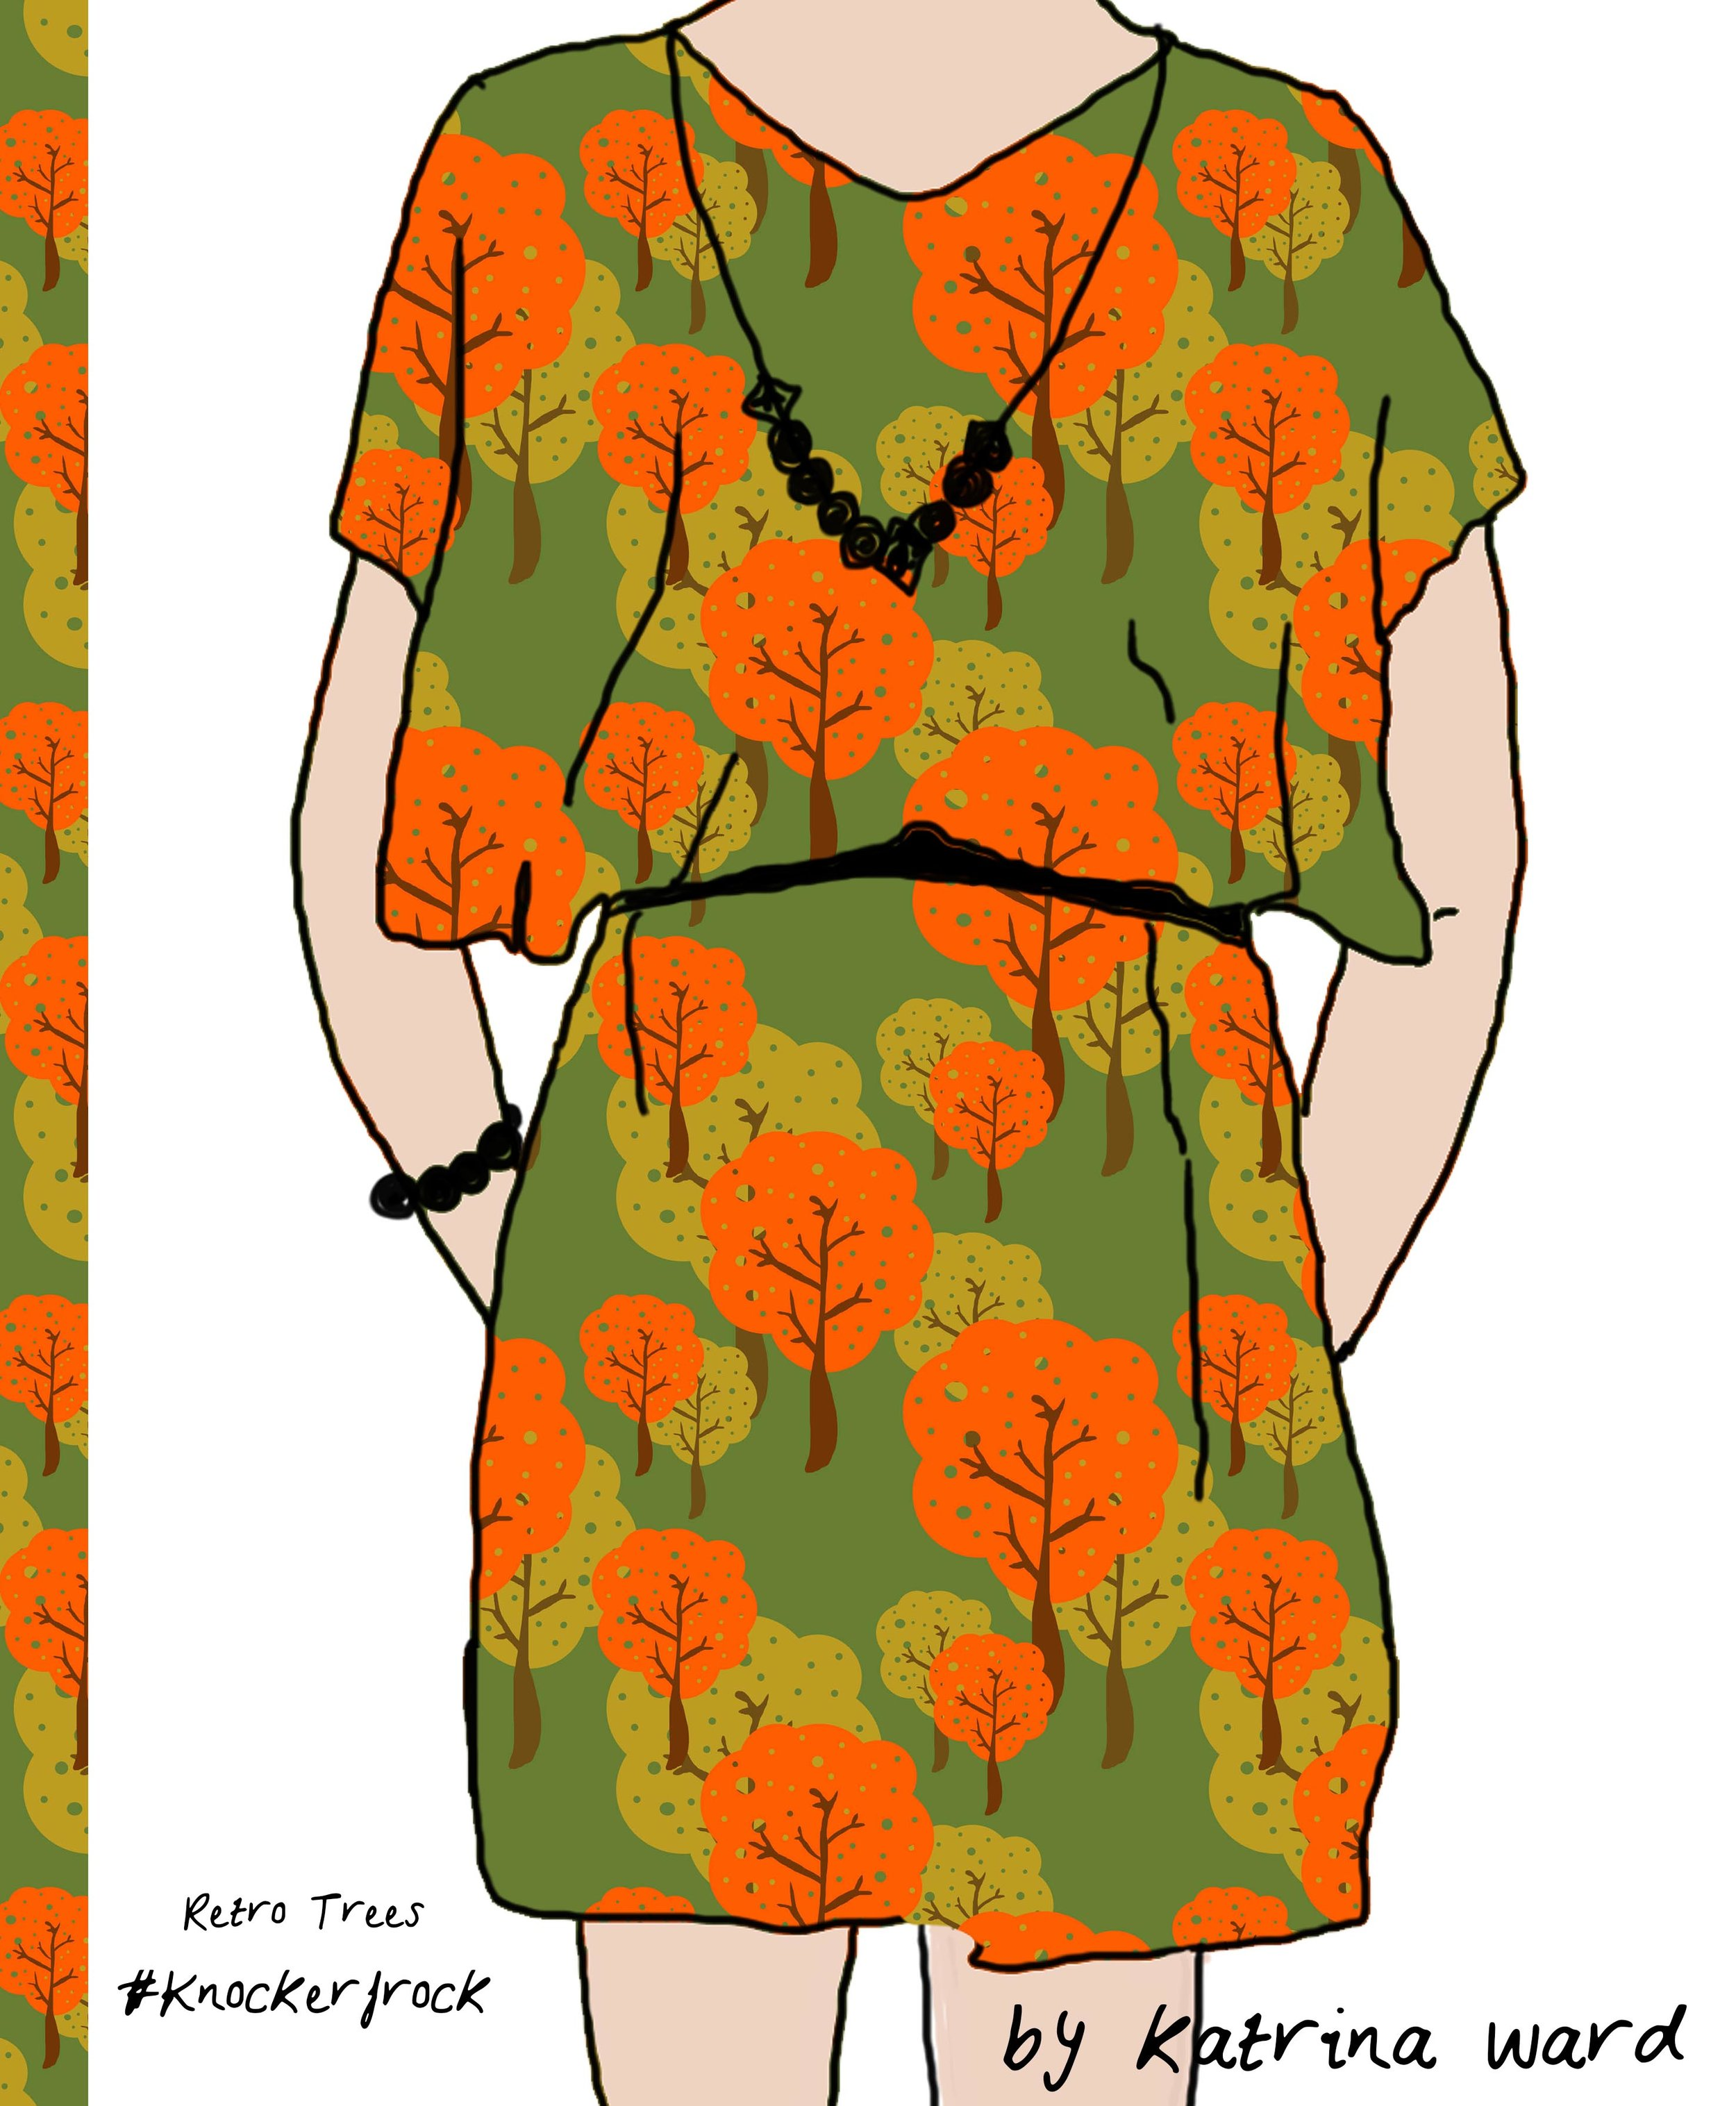 retro trees knockerfrock.jpg